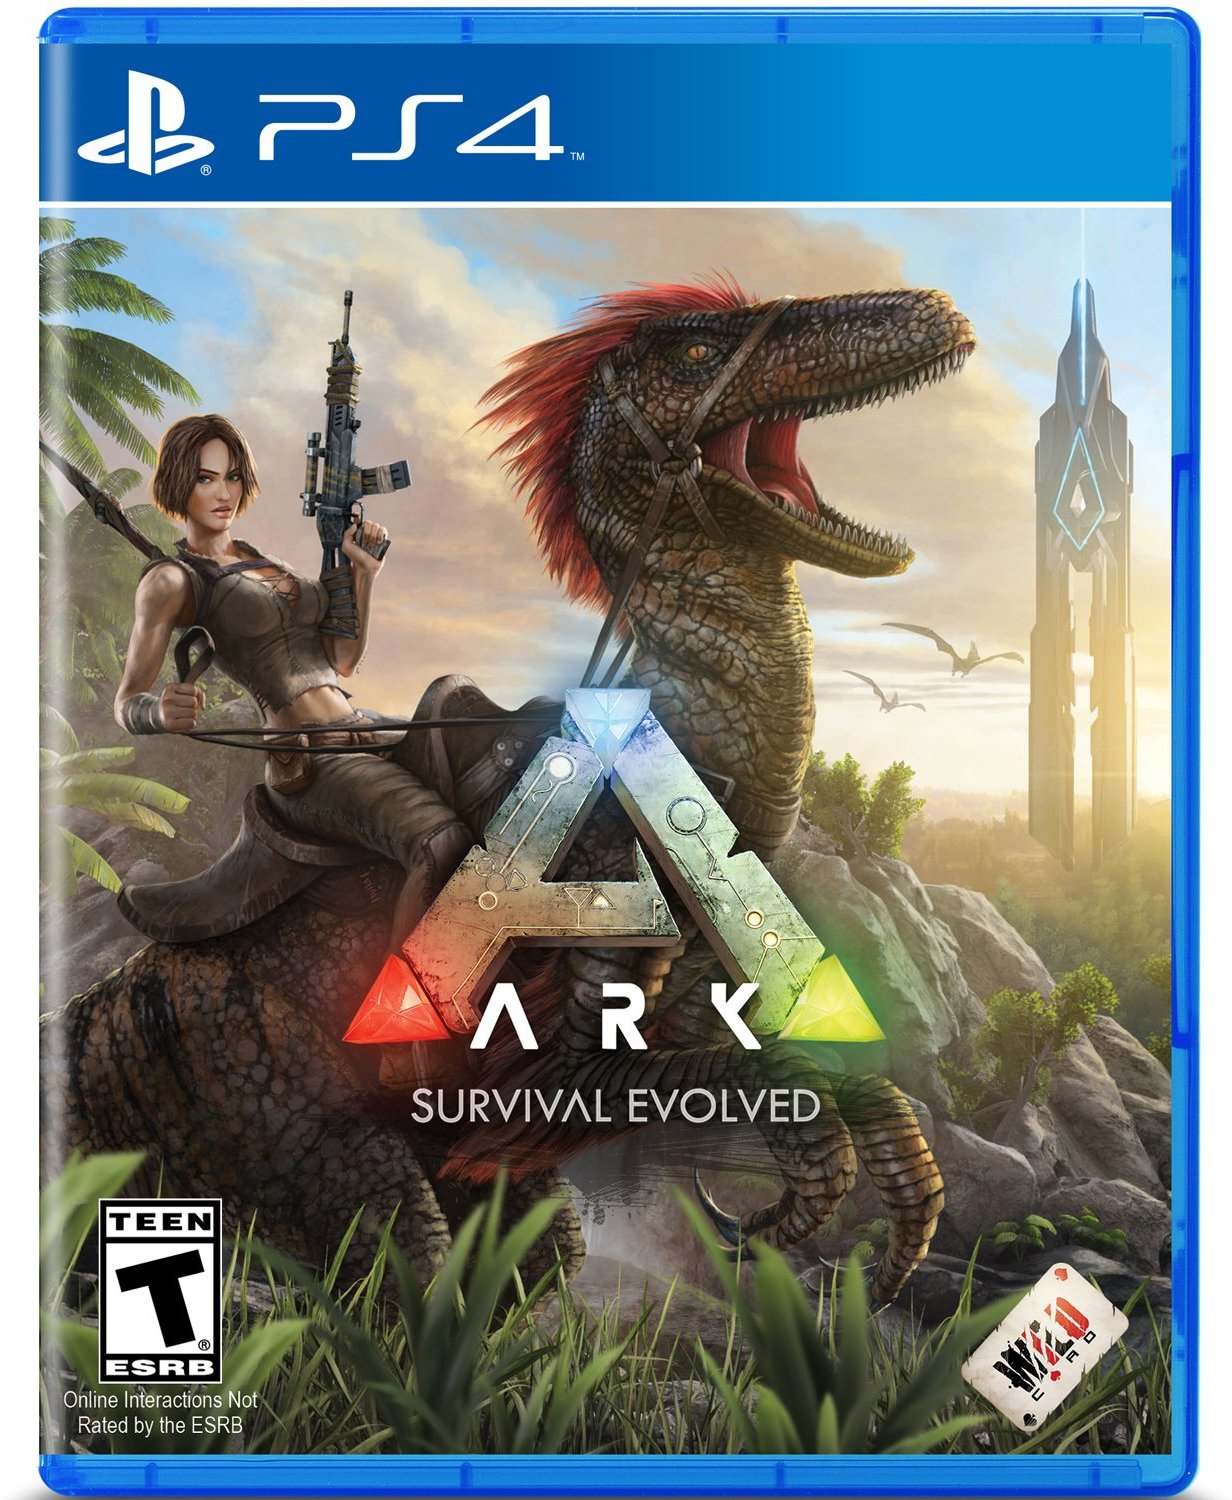 PS4 ARK Survival Evolved (PlayStation 4)